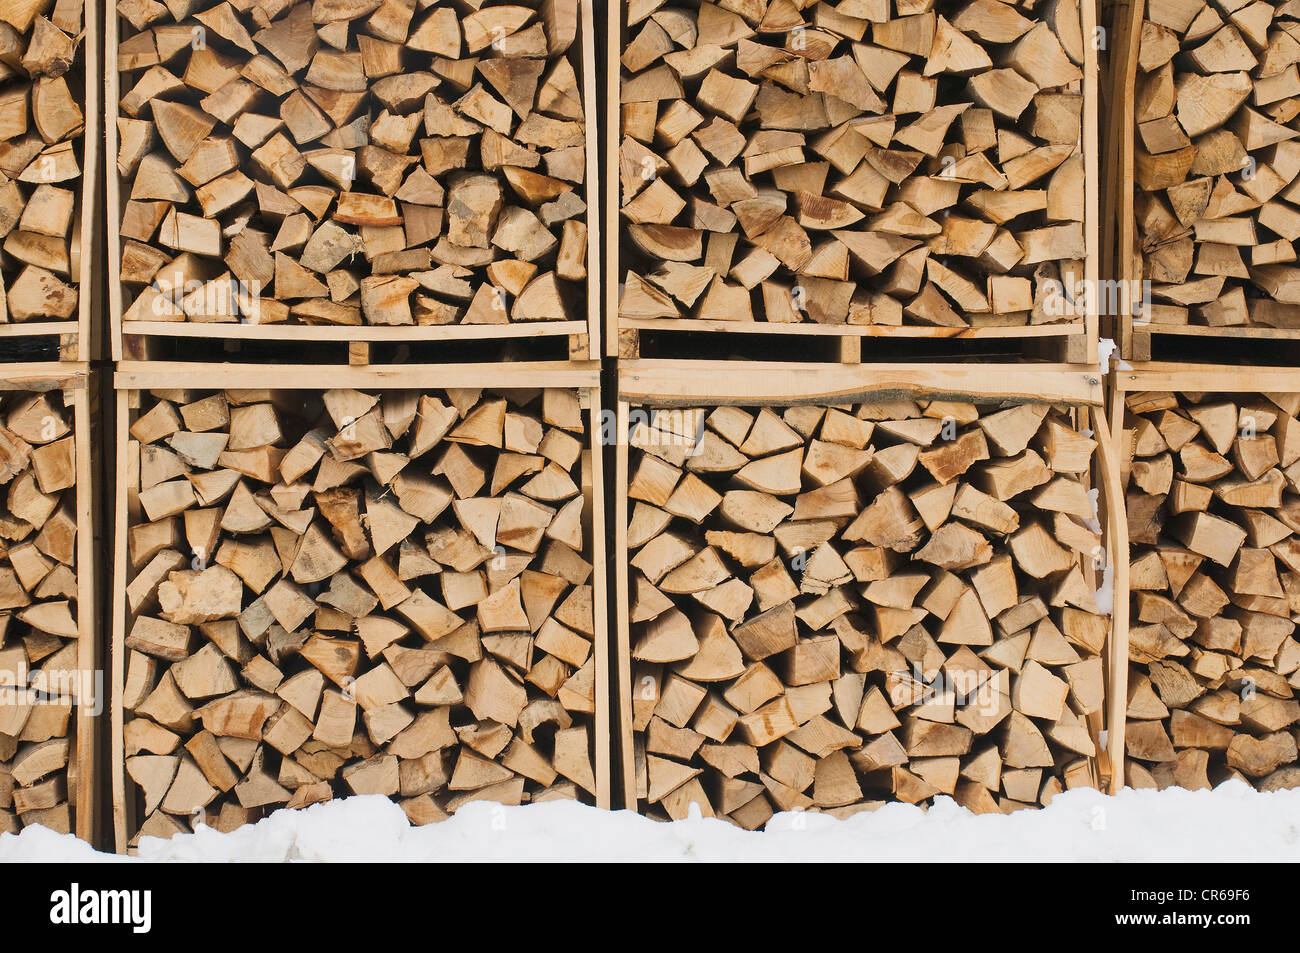 Accurately filled boxes of fire wood in the snow, timber, background - Stock Image